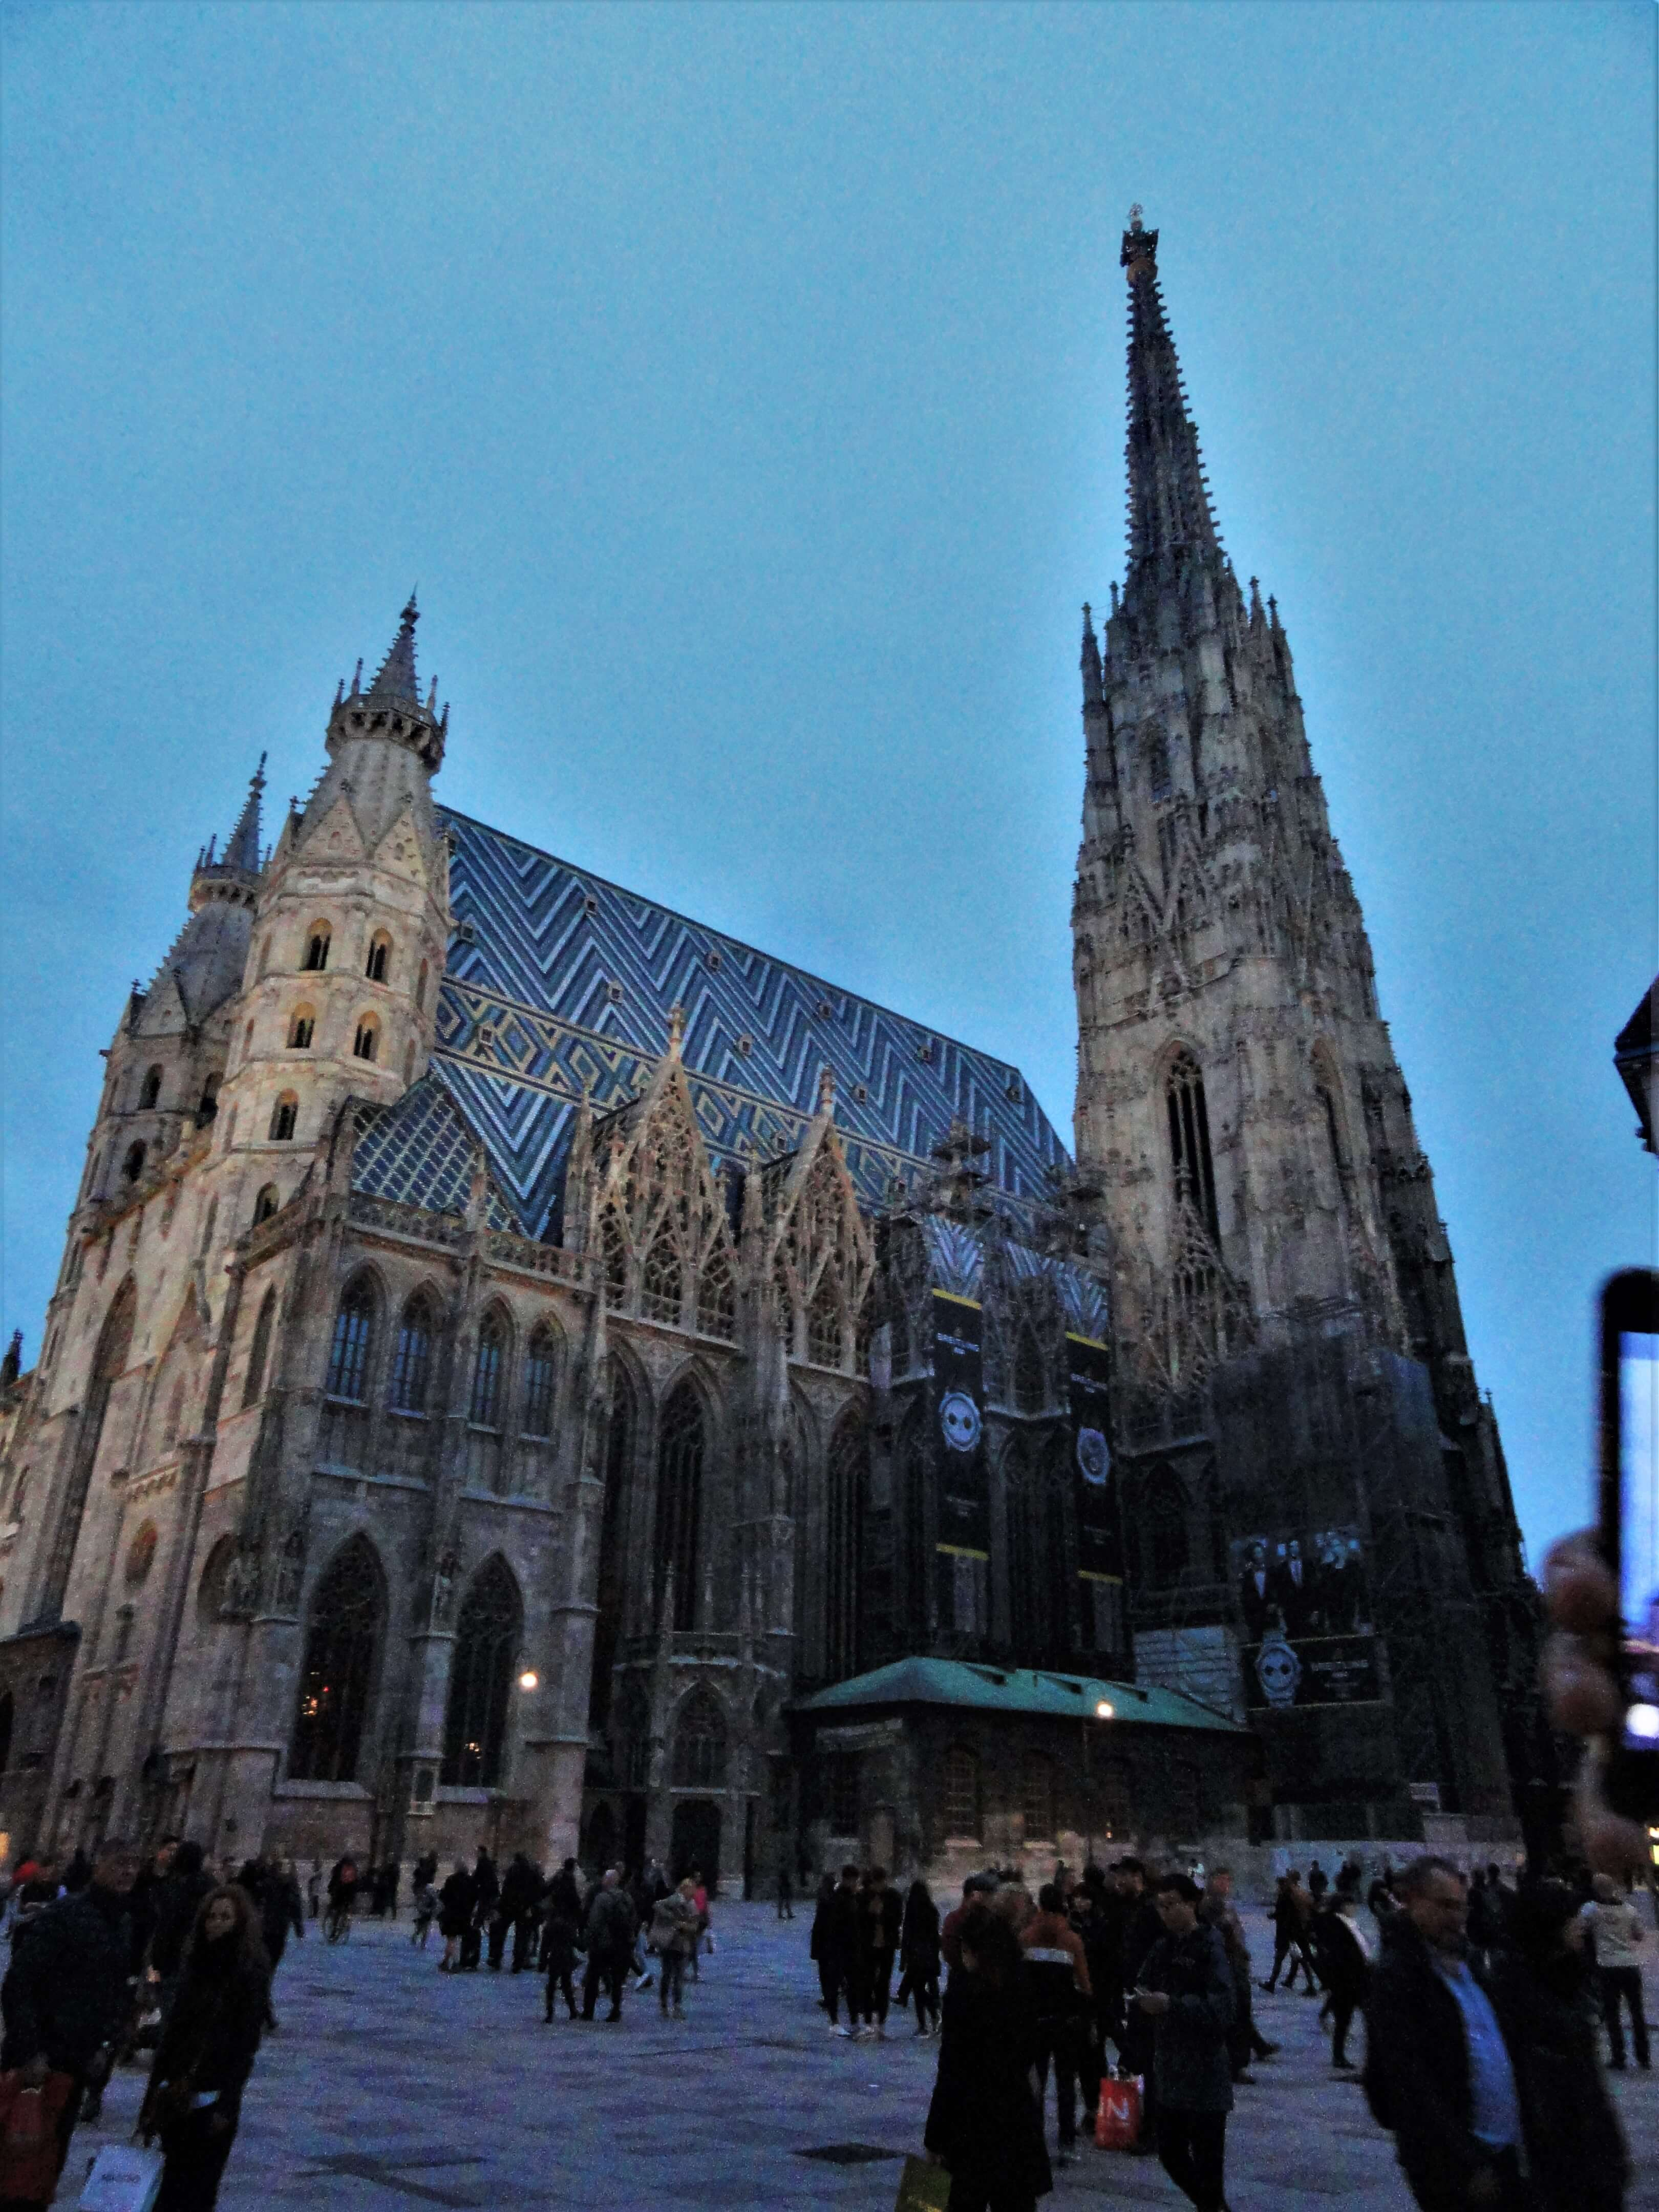 St. Stephans Cathedral in Vienna at night